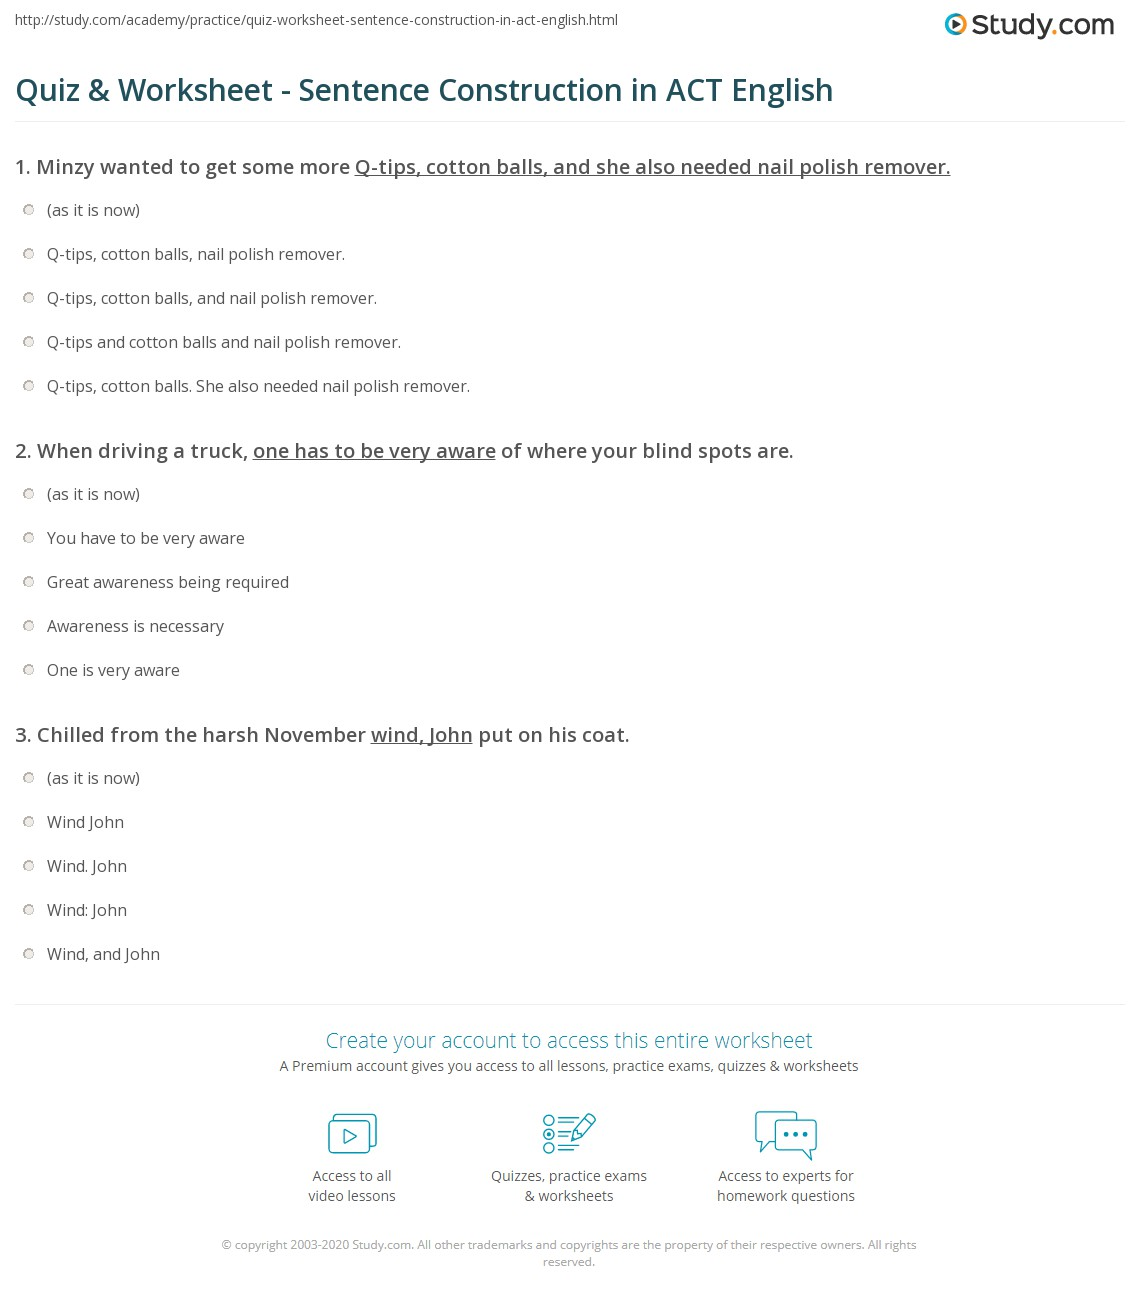 Print ACT English Practice: Sentence Construction Worksheet